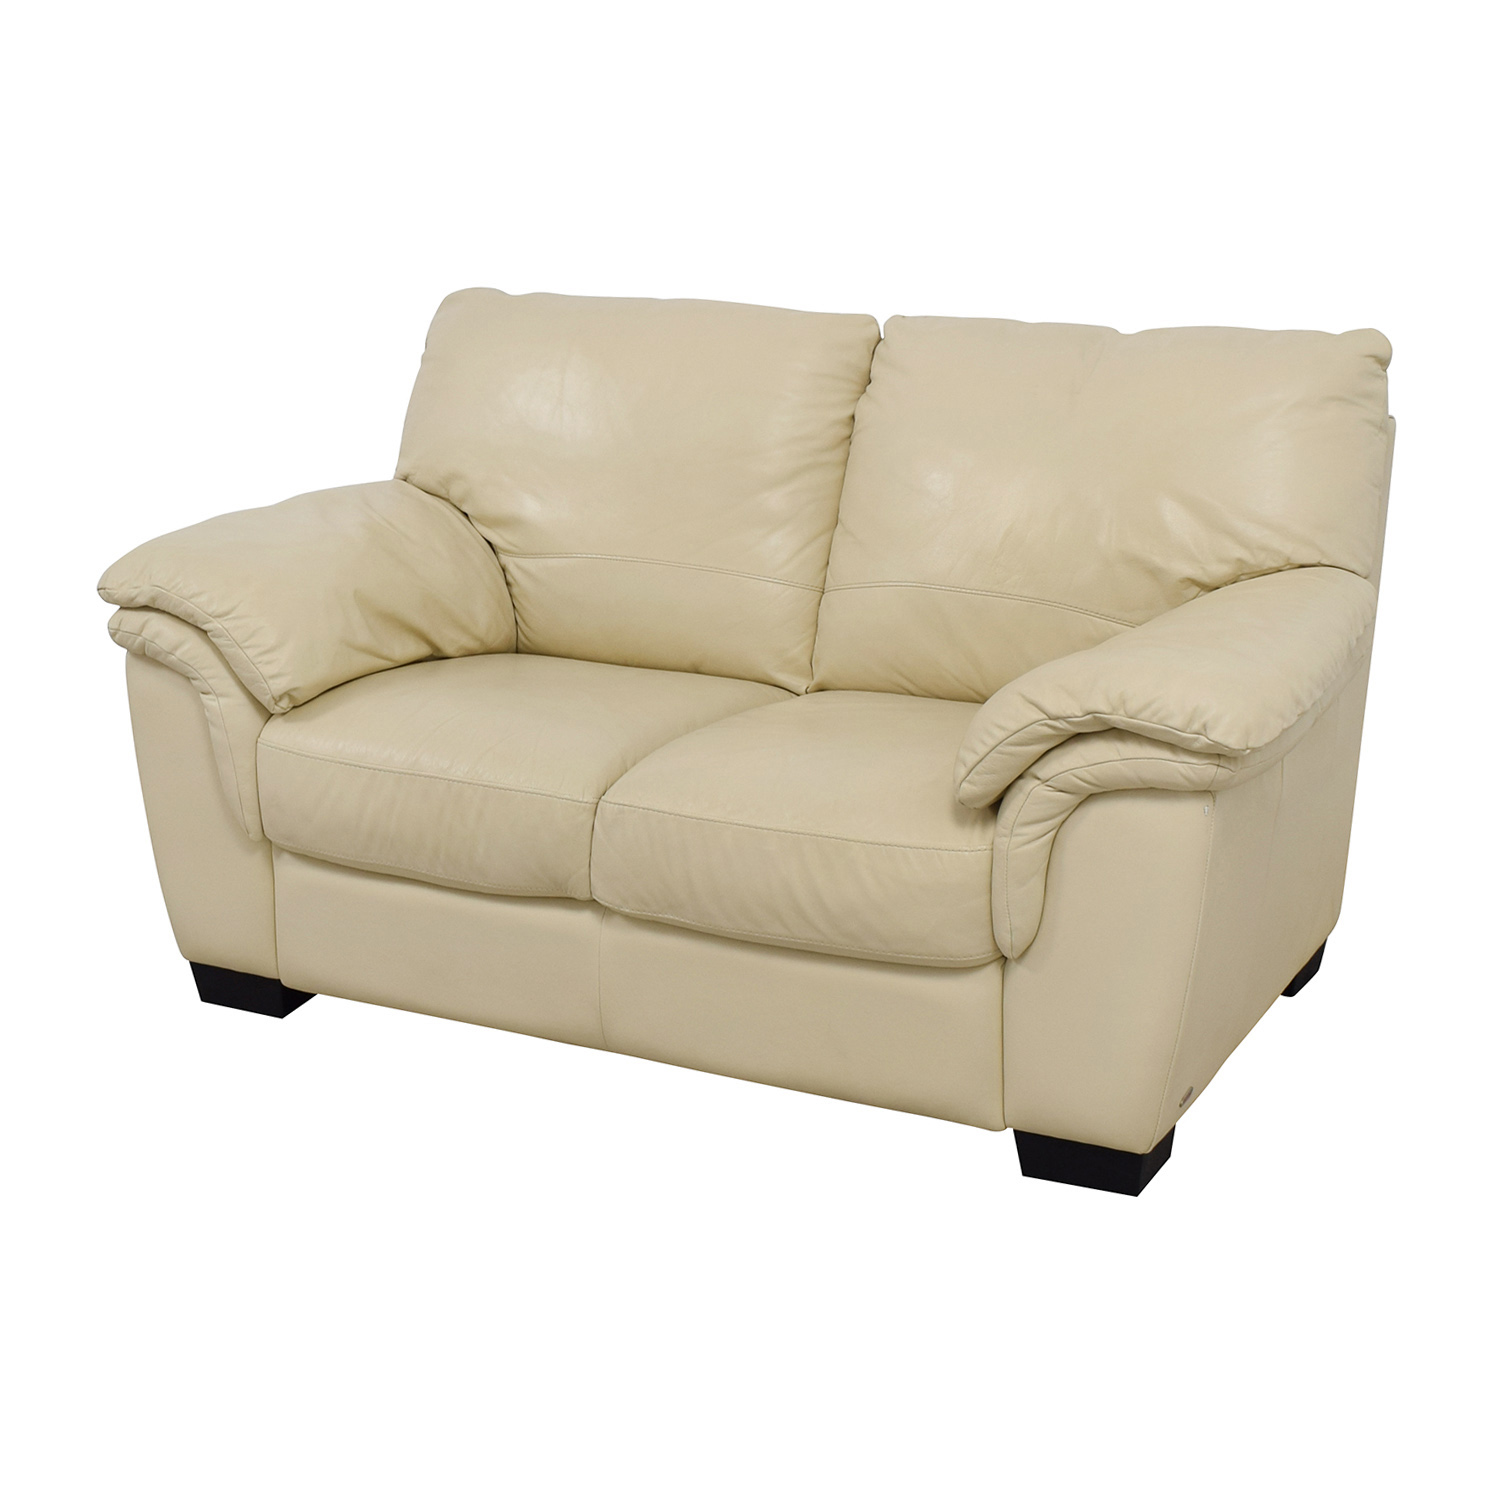 raymour and flanigan chairs brentwood originals chair pads 80% off - natuzzi italsofa white loveseat / sofas